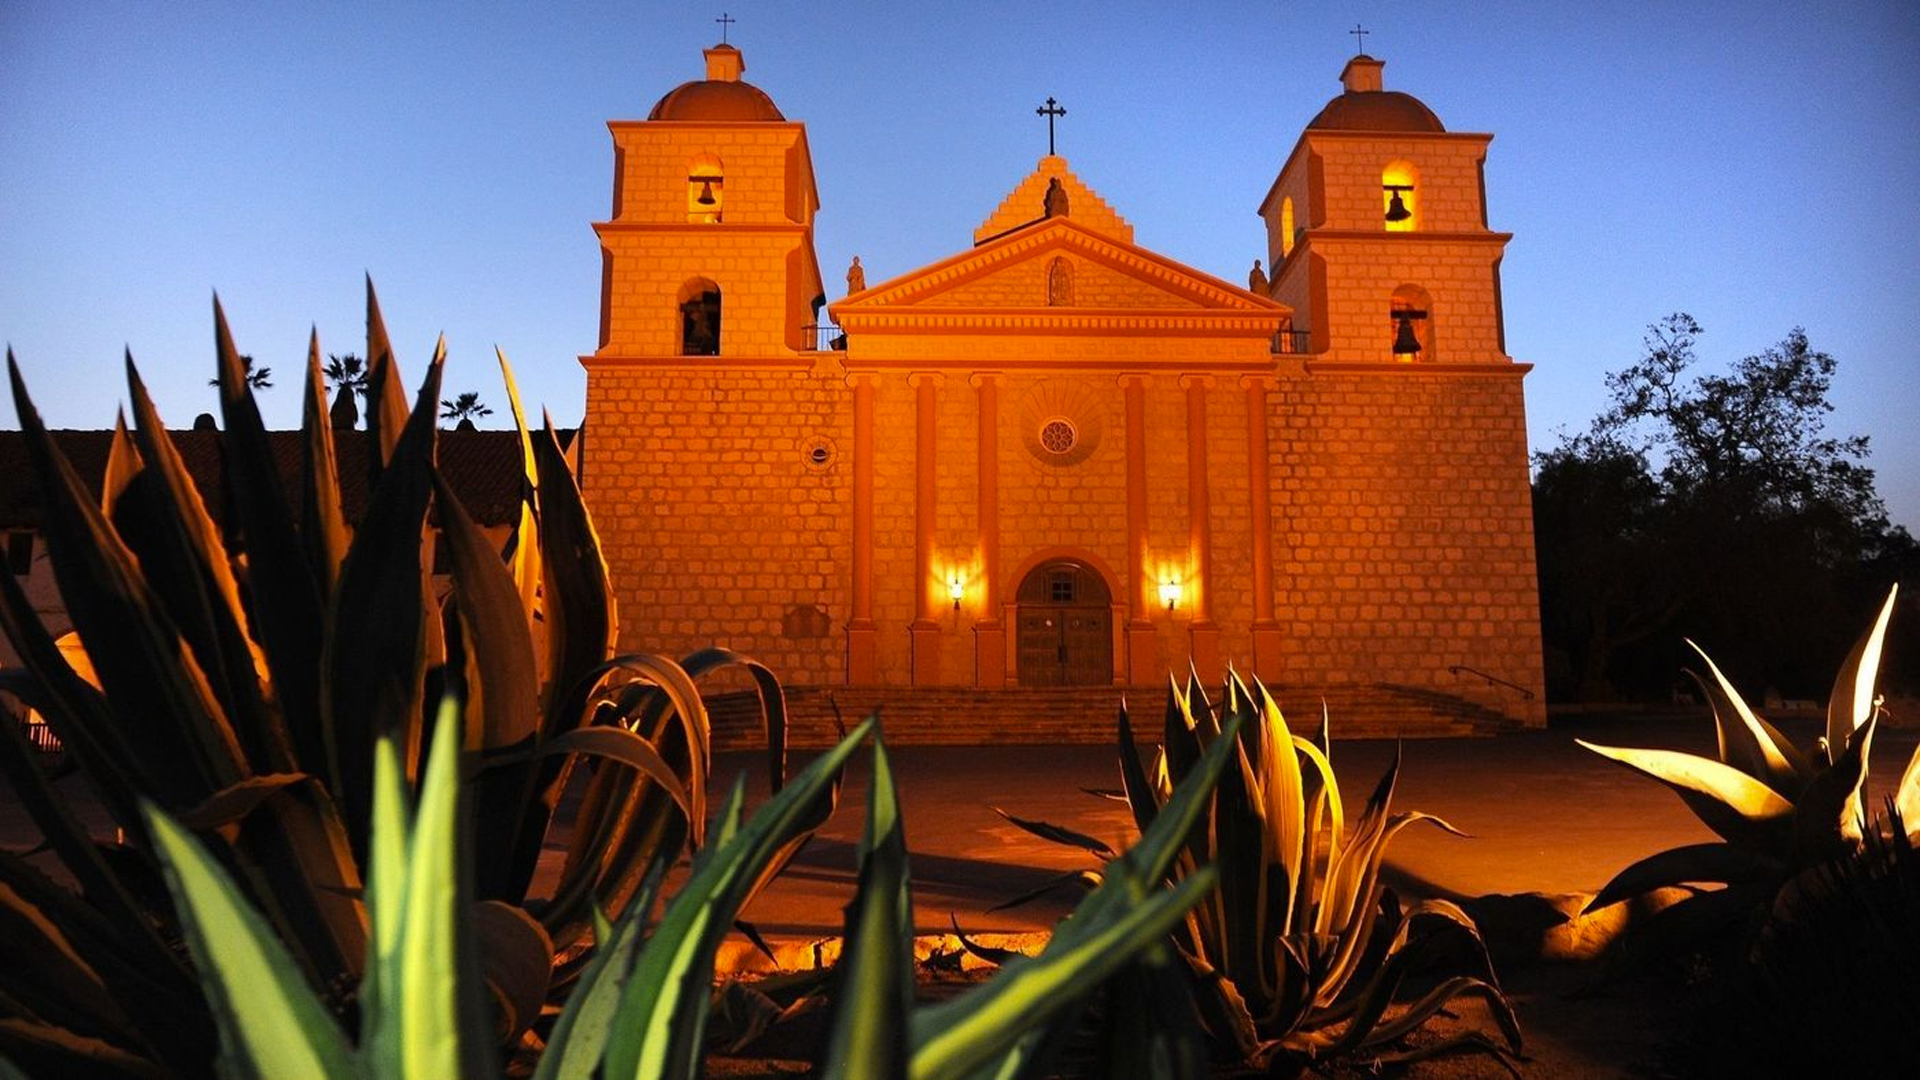 Graffiti was discovered on the outside of the Old Mission Santa Barbara building and on several pillars on the property early Wednesday, police said. (Credit: Wally Skalij / Los Angeles Times)